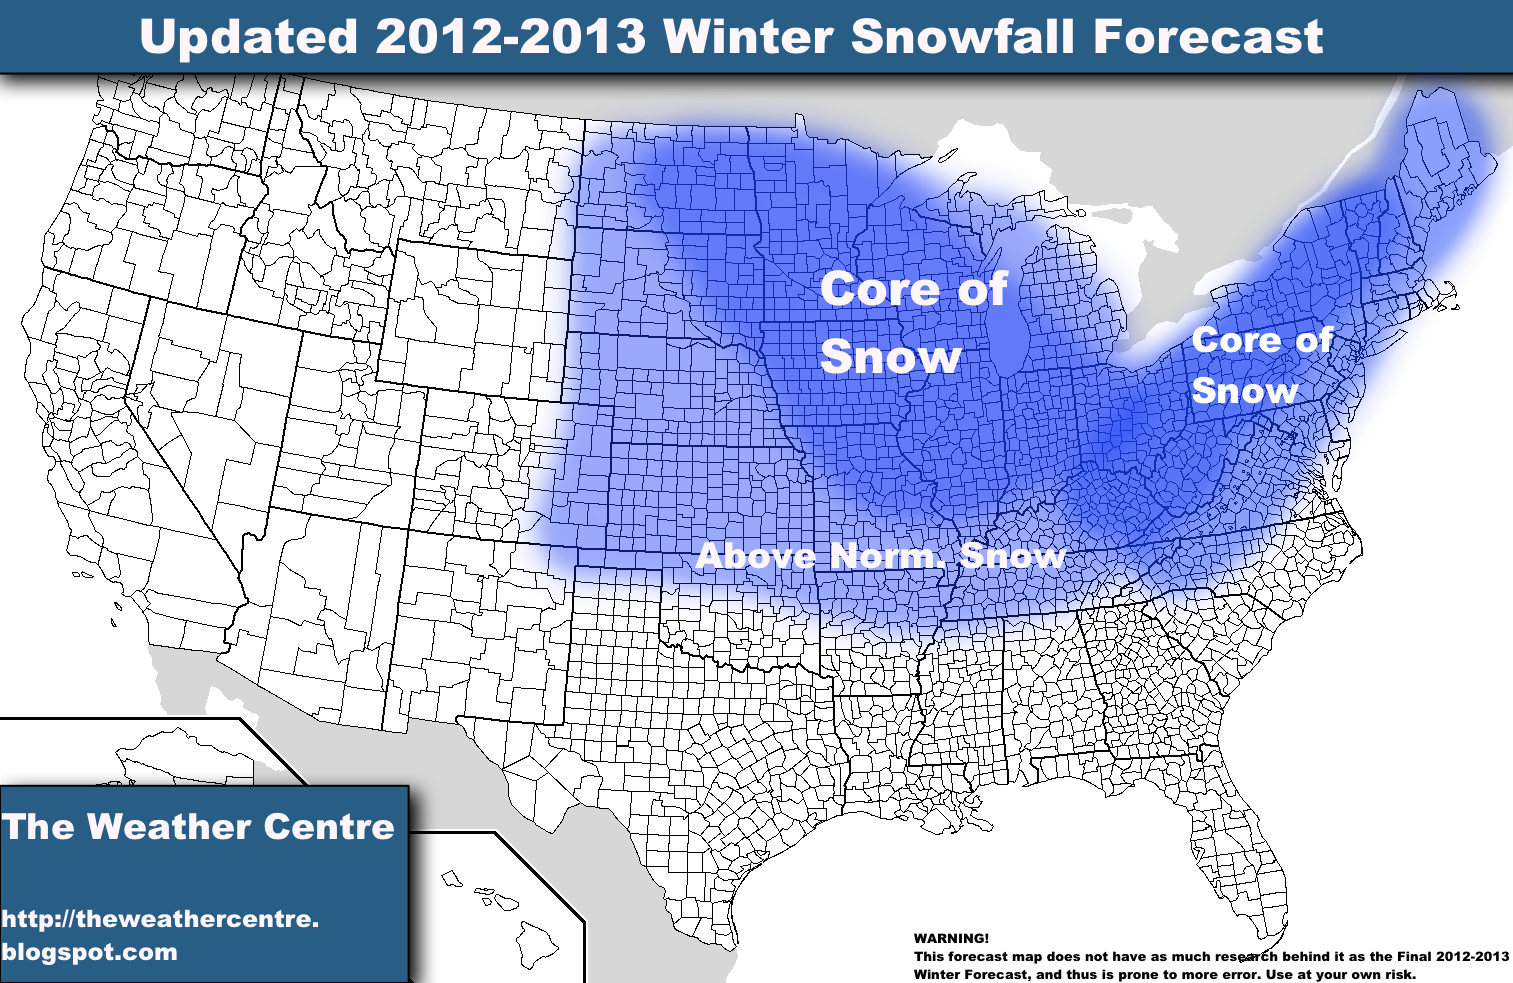 2014-2015 Winter Forecast ALSO: Potentially Significant Severe Weather